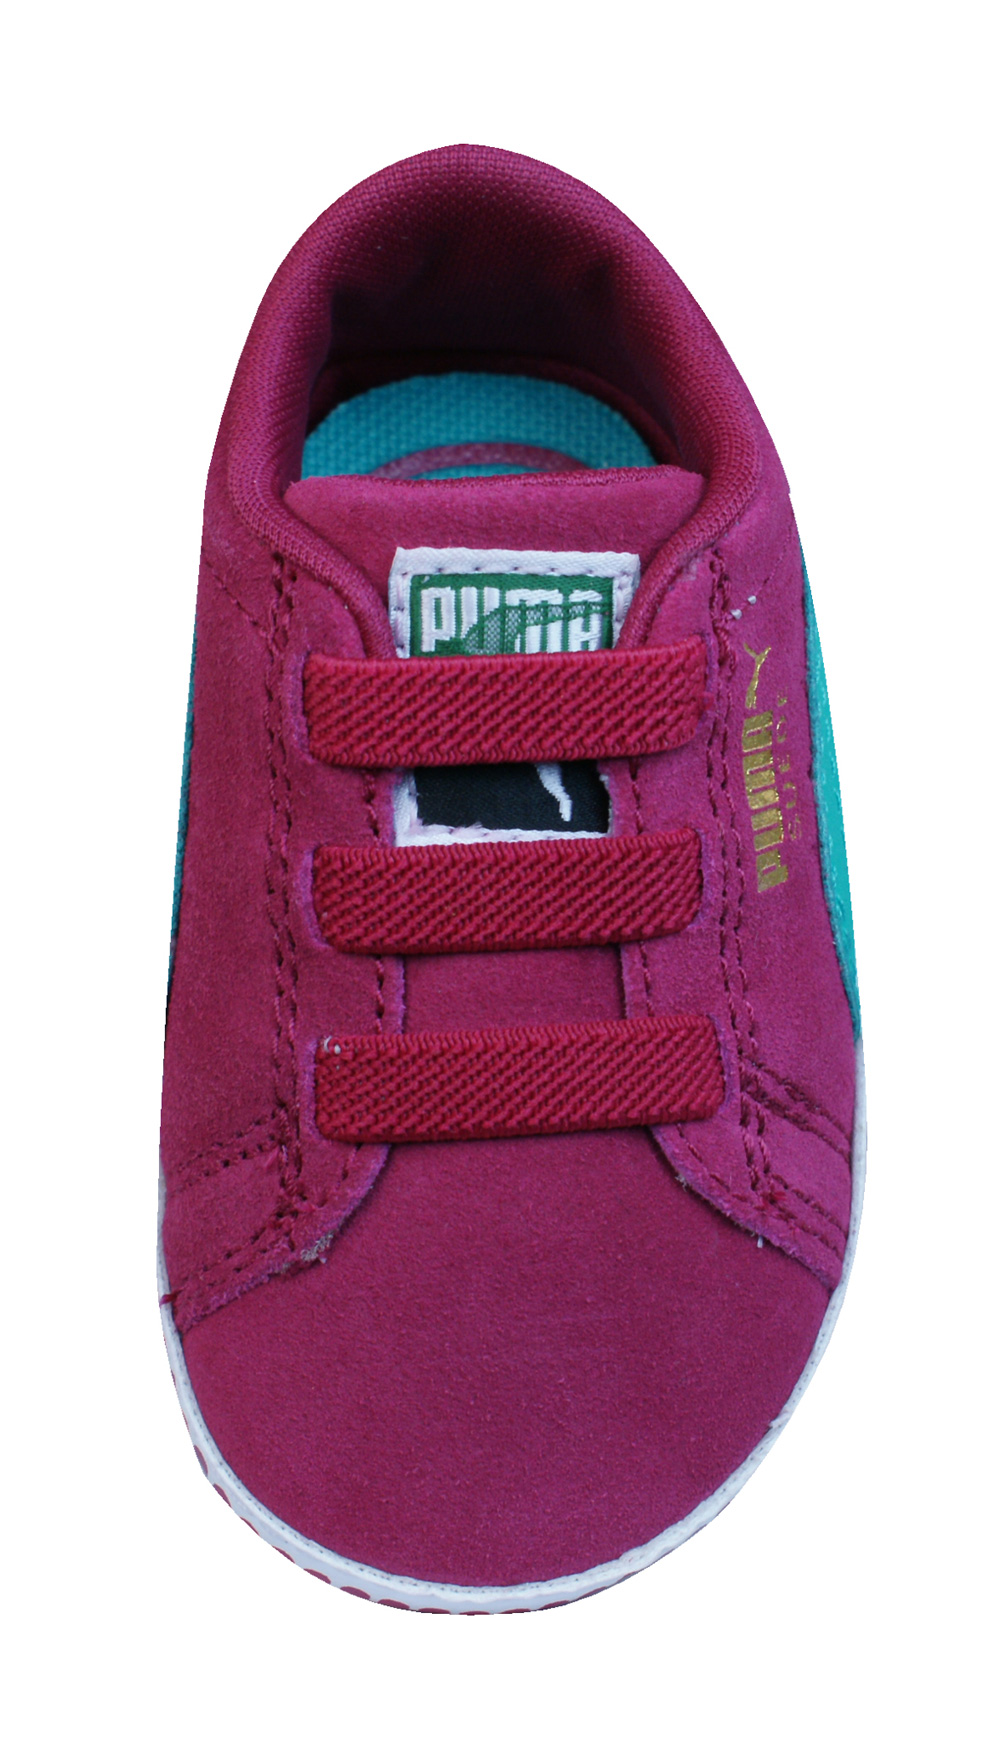 8e18bddc85ab Puma Suede Crib Infant   Baby Girls First Walker Trainers   Shoes - Cerise